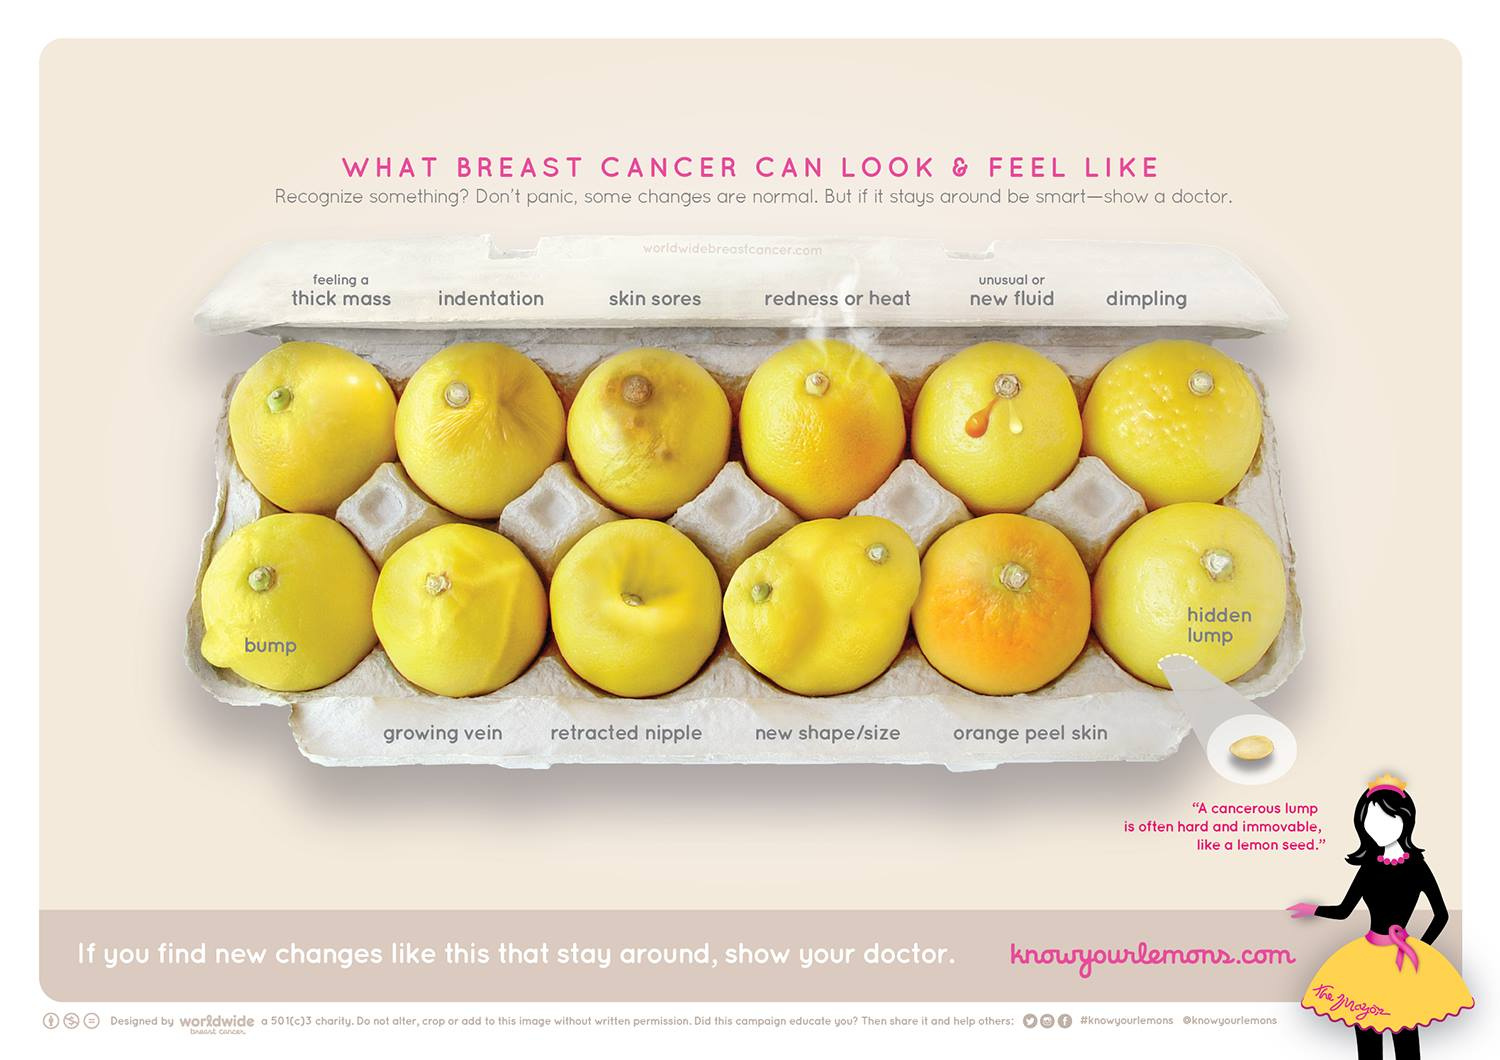 Image showing what breast cancer can look like as imagined using lemons